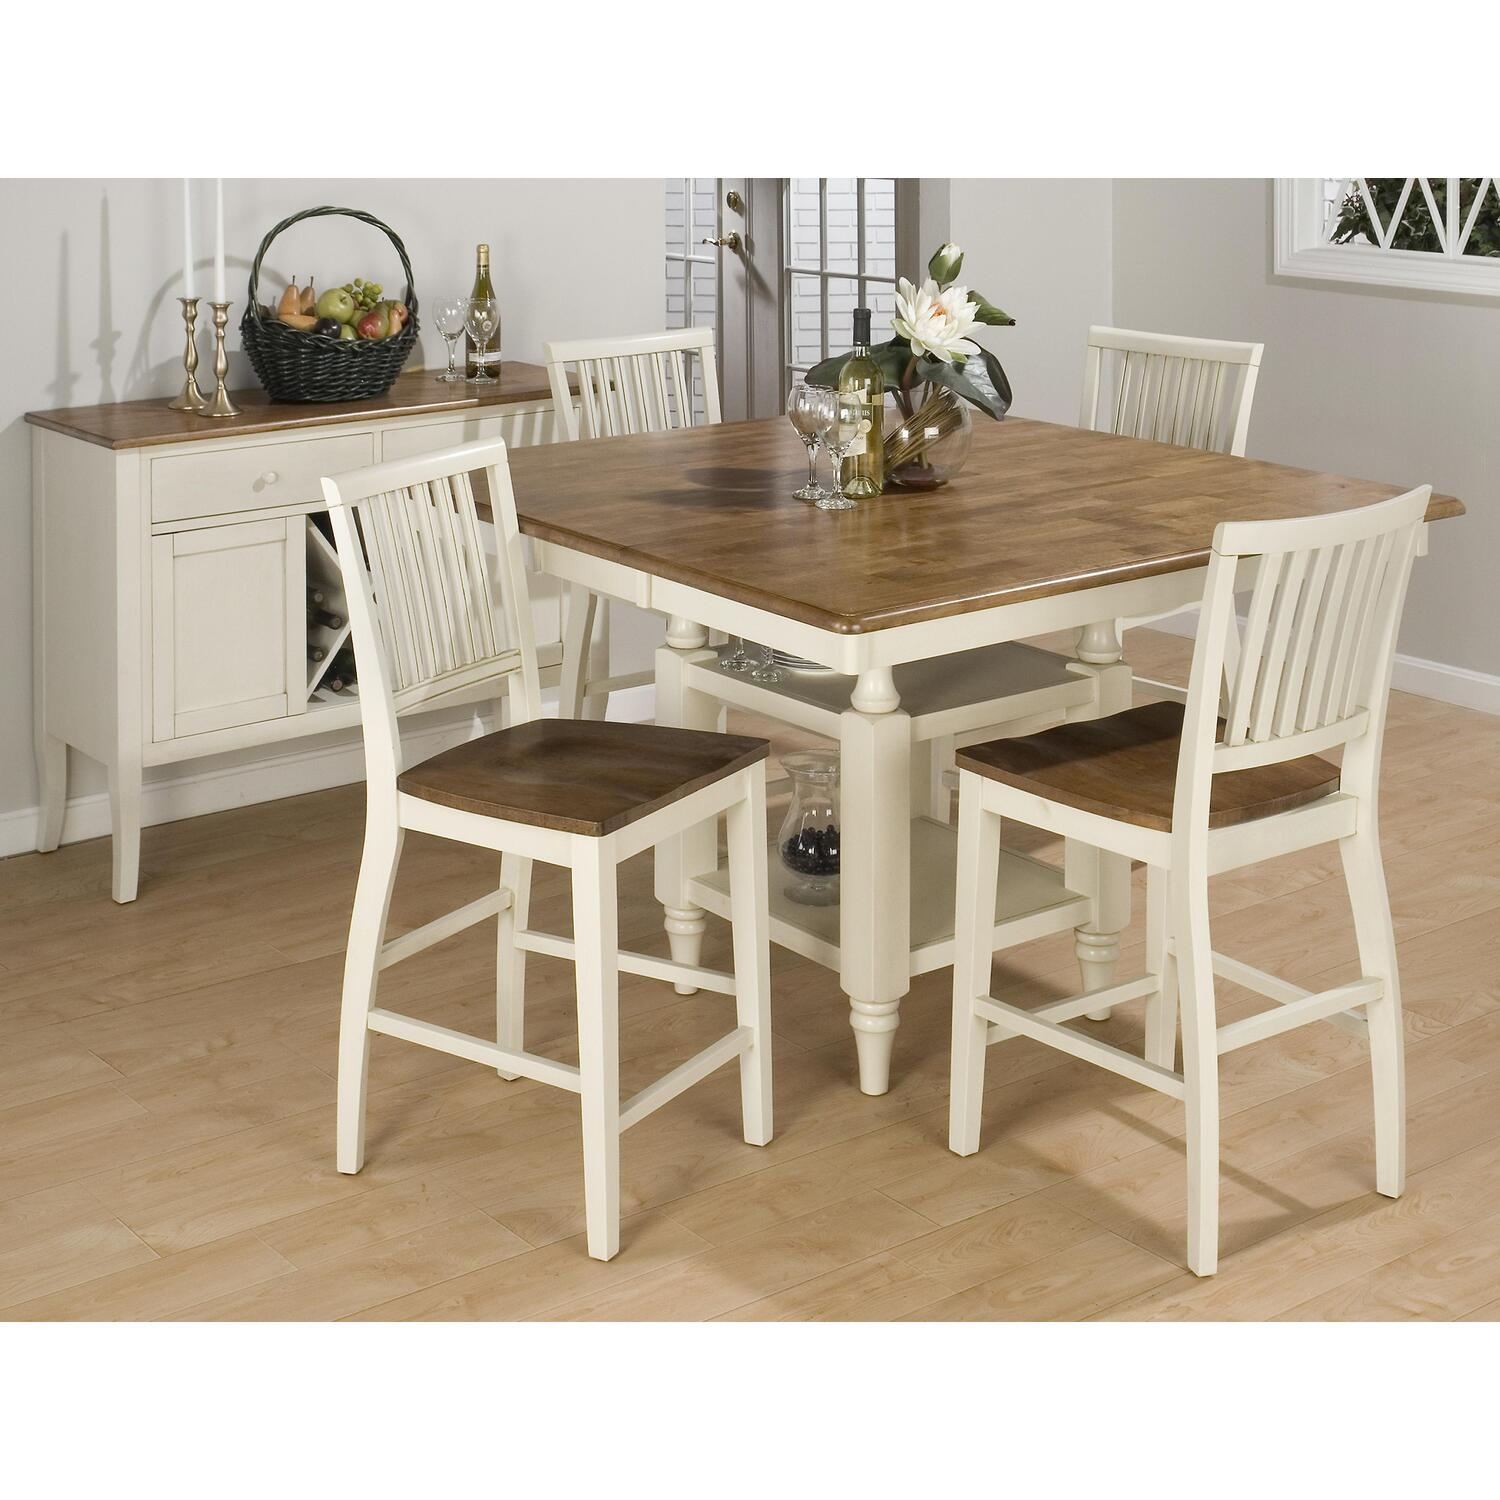 ^ ountry White ounter Height Dining oom able Furniture Set. and ...